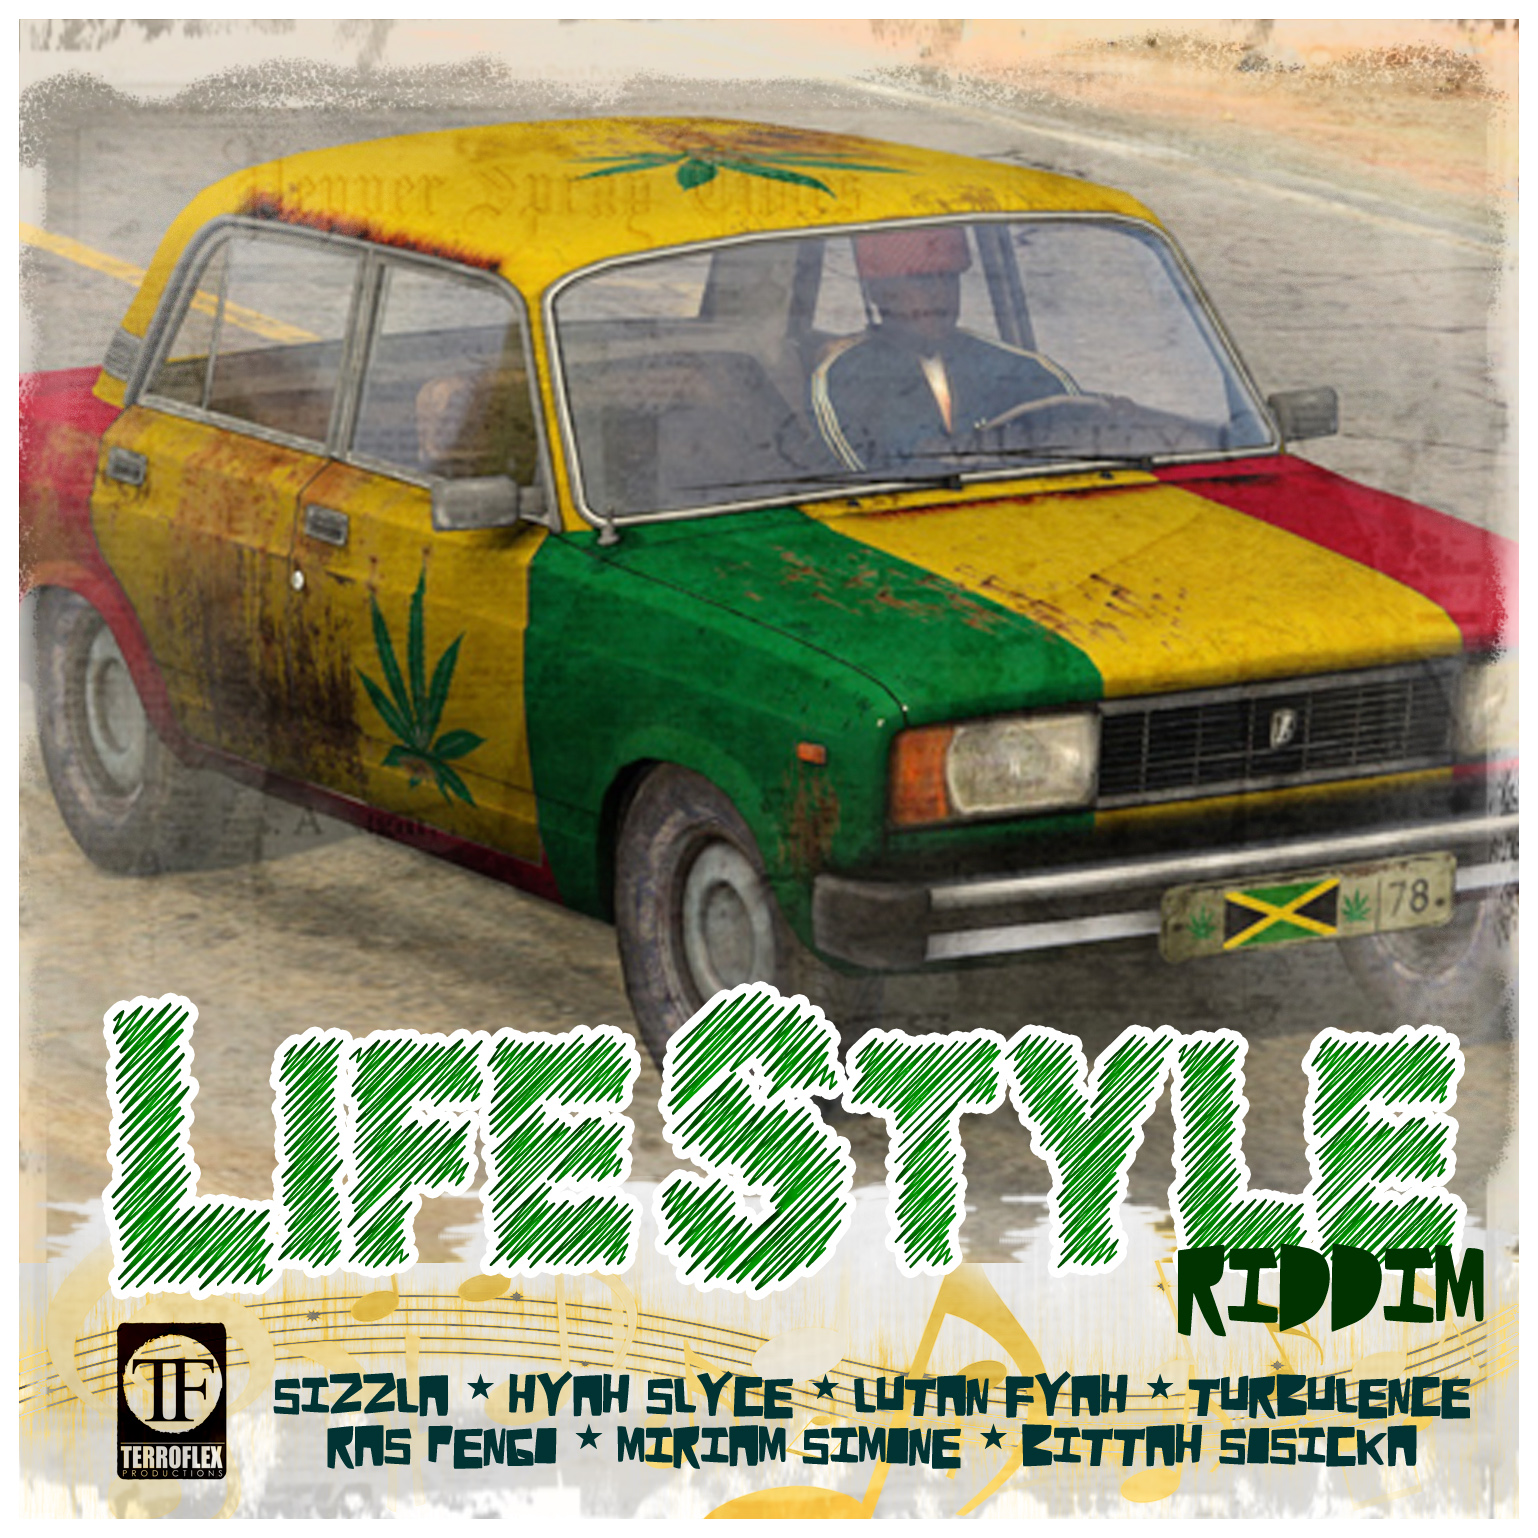 LIFESTYLE-RIDDIM-TERROFLEX-PRODUCTIONS-COVER-ARTWORK